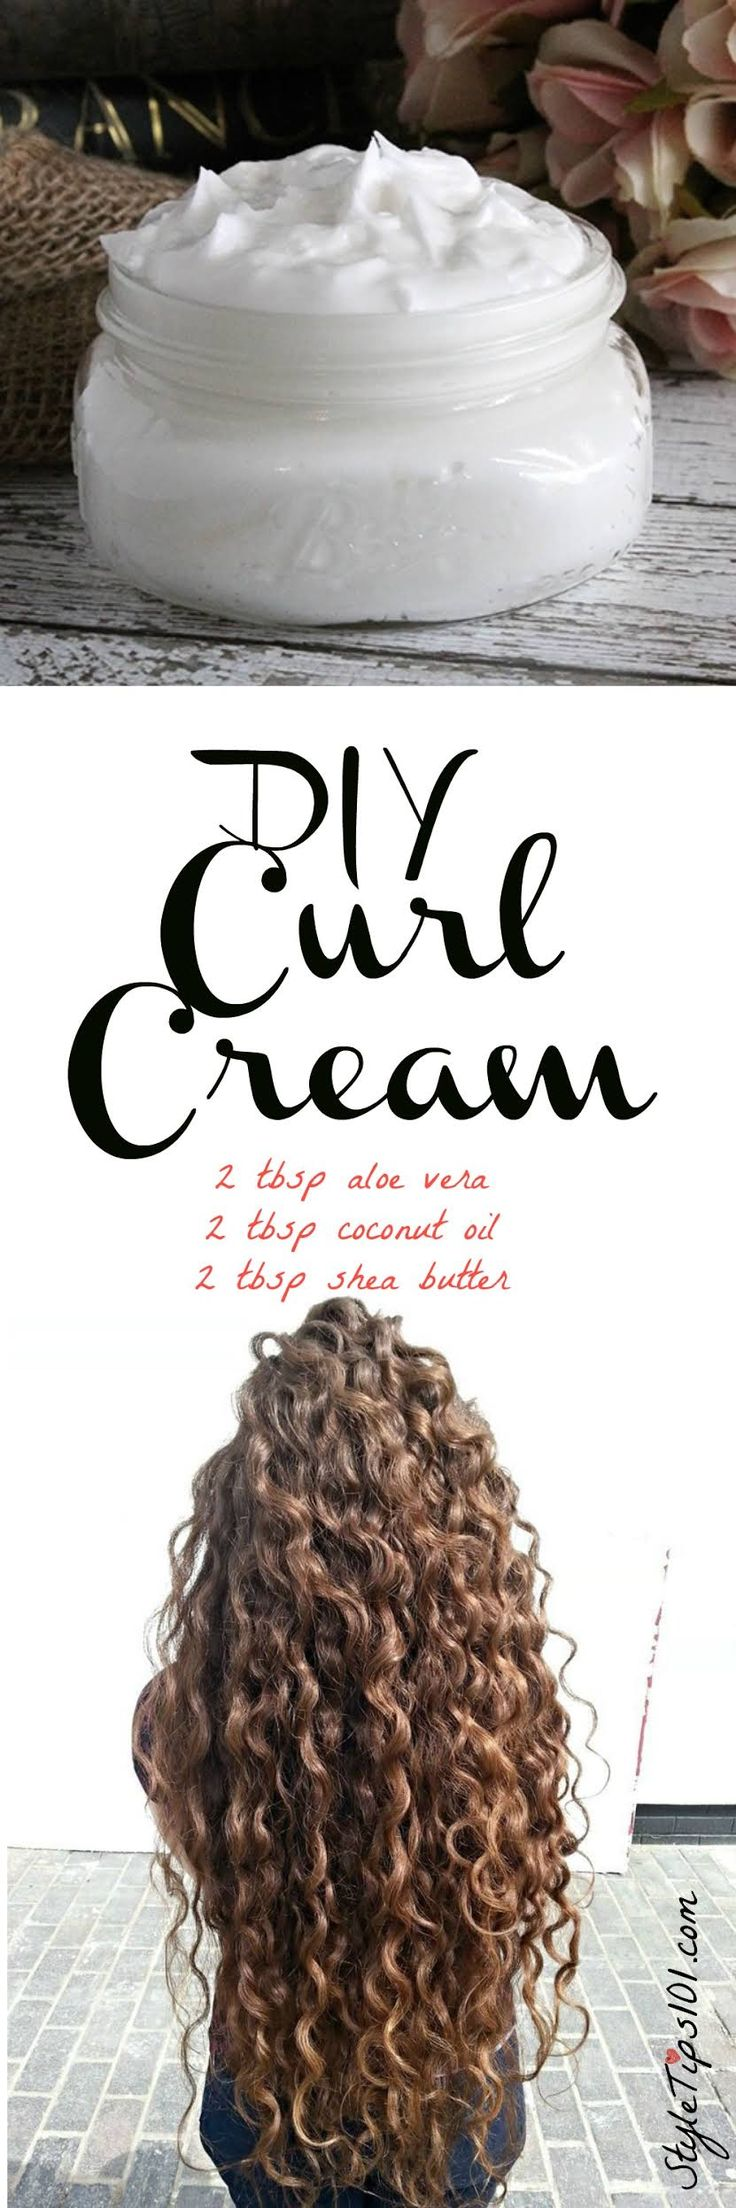 DIY Curl Cream http://postorder.tumblr.com/post/157432644549/options-for-short-black-hairstyles-2016-short